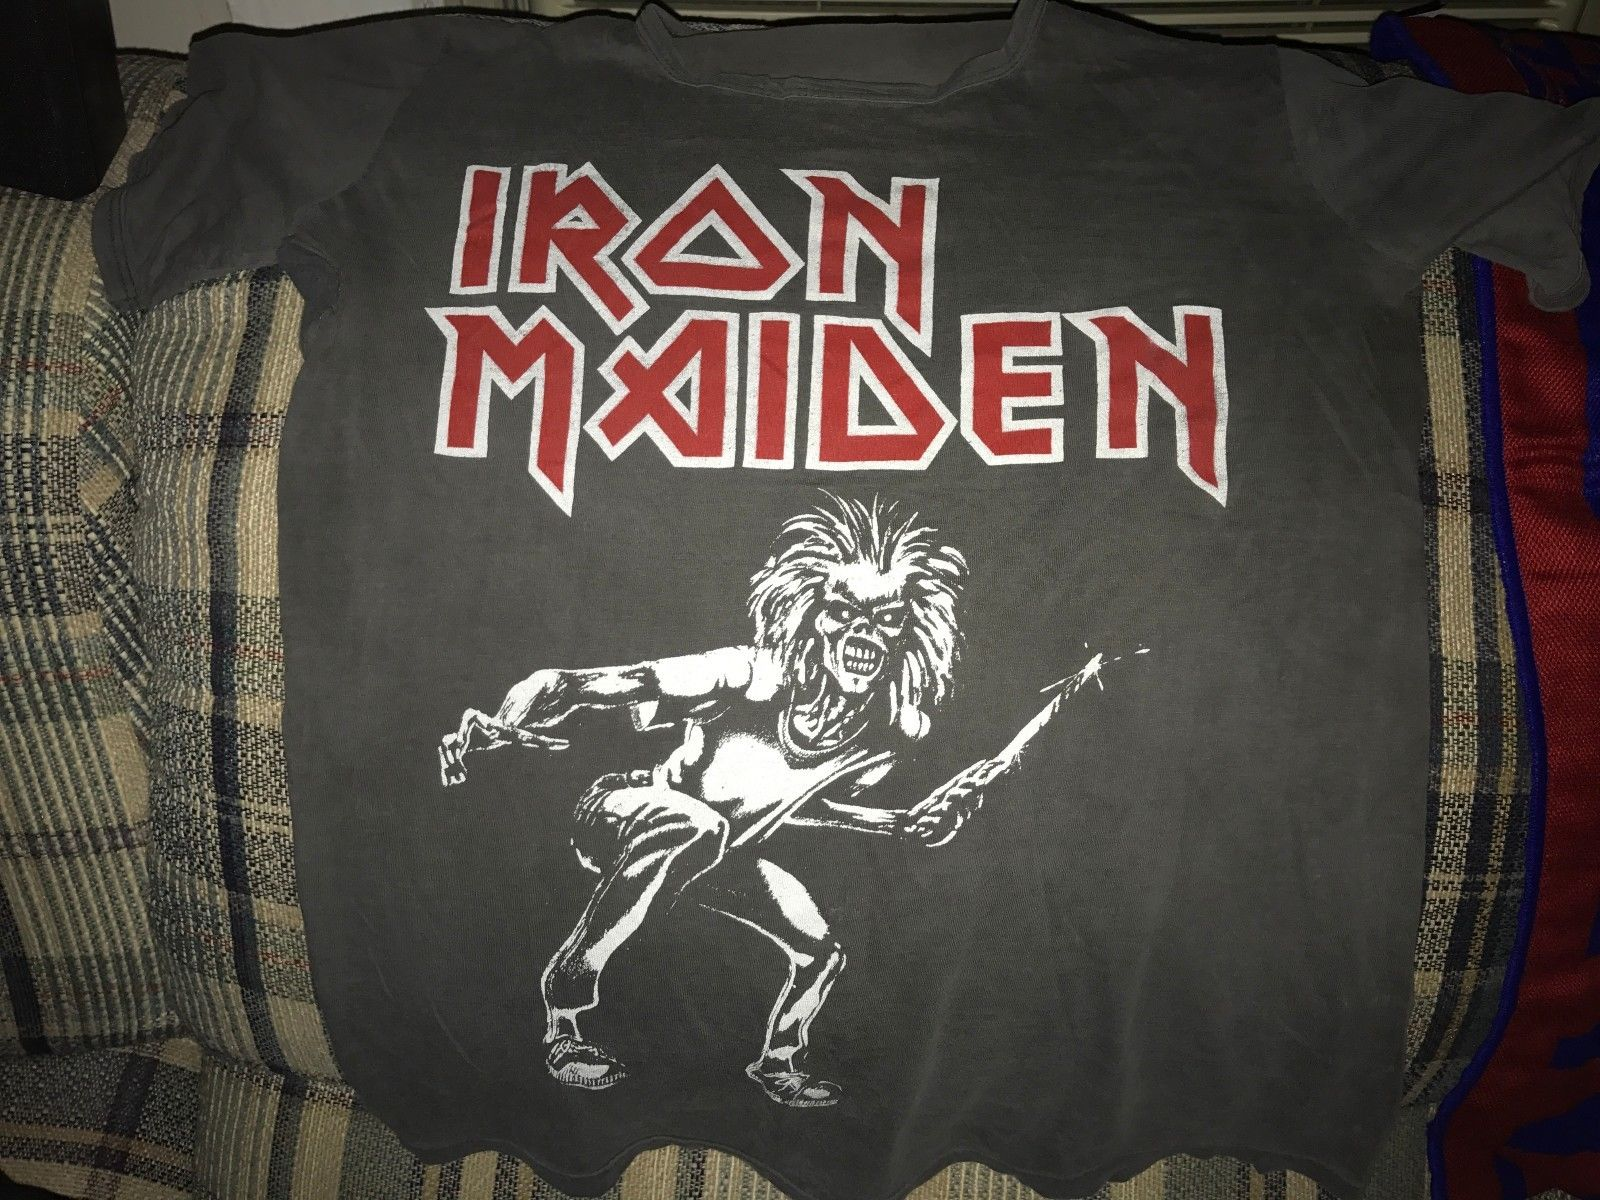 where to buy band t-shirts in the greater boston area.